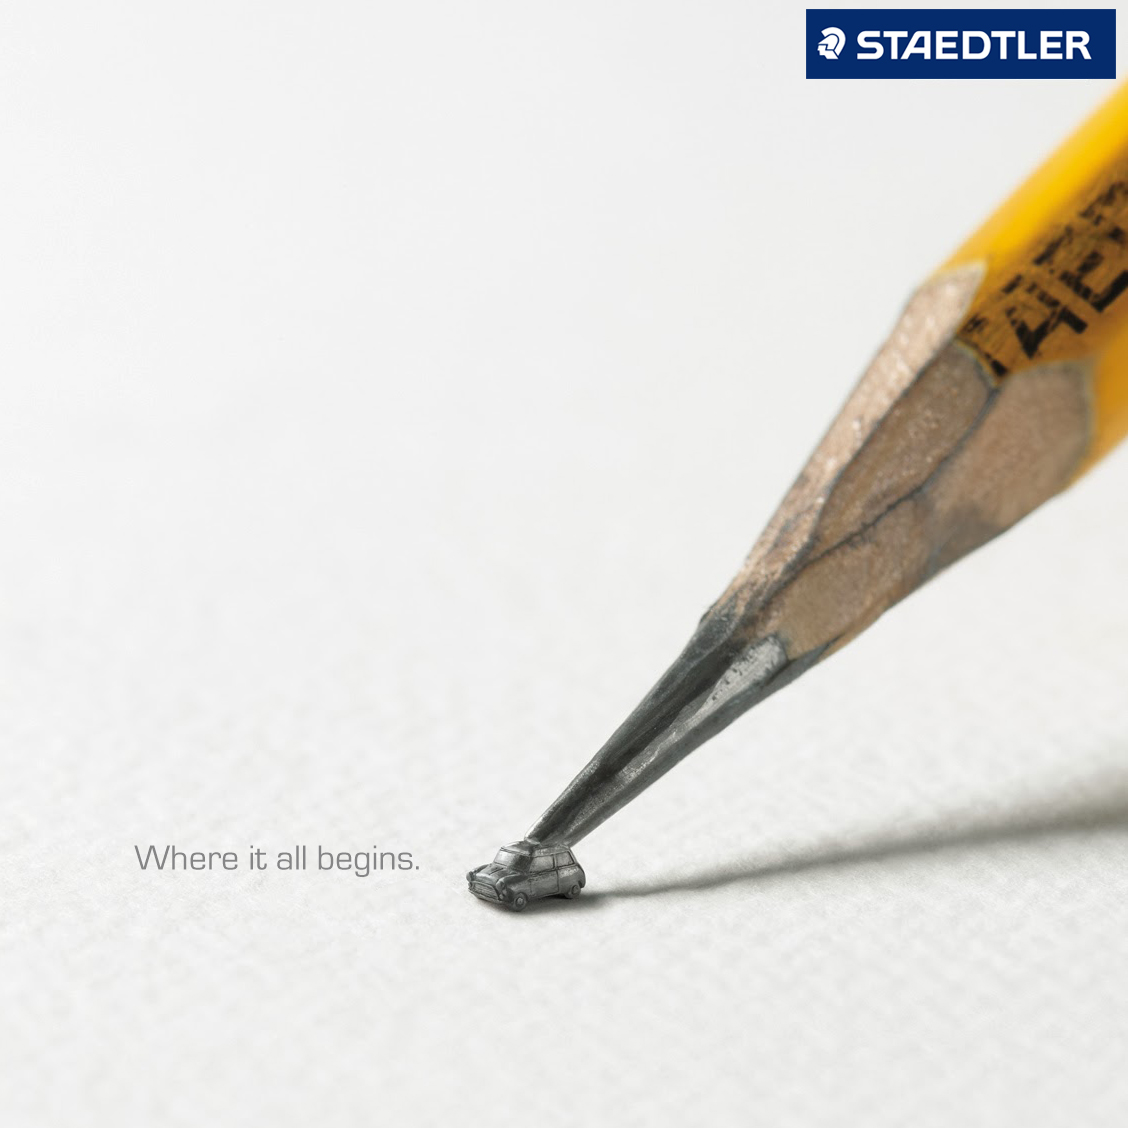 Designed by pencil